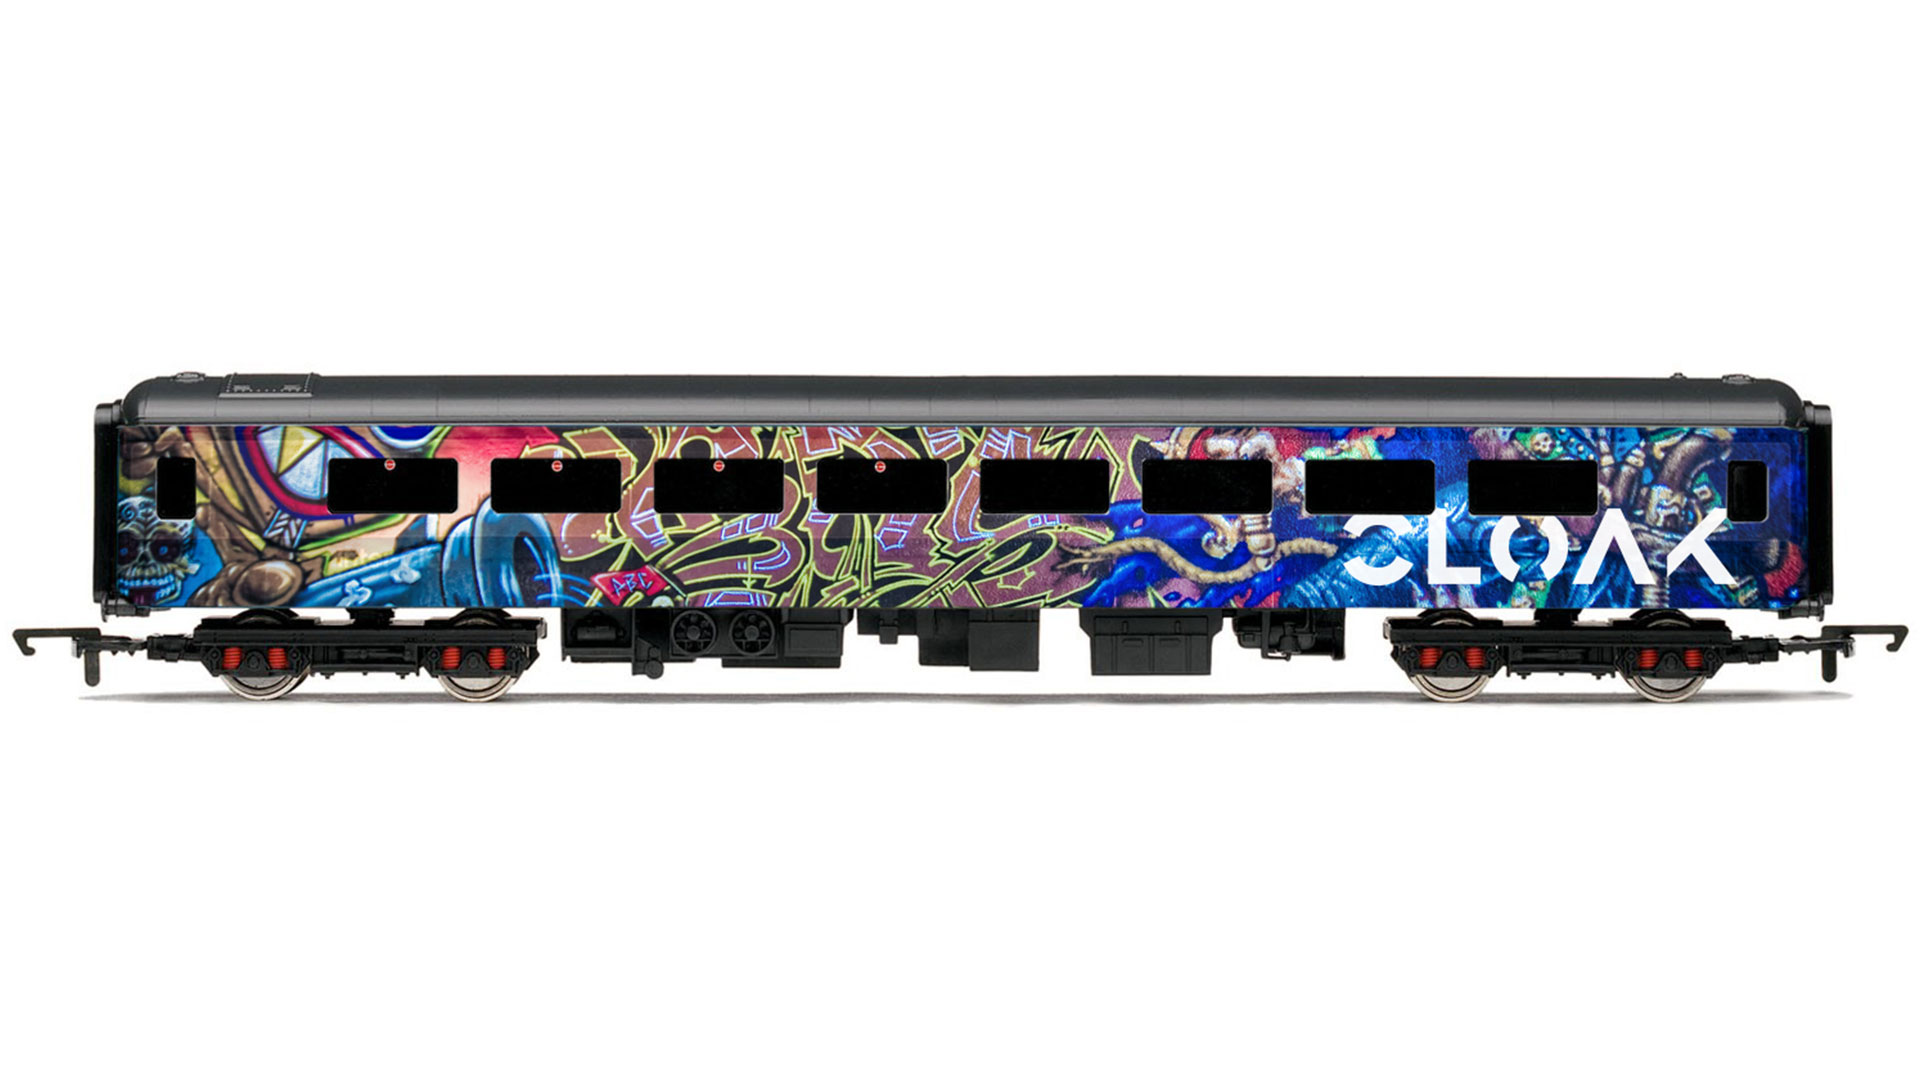 CLOAK_train